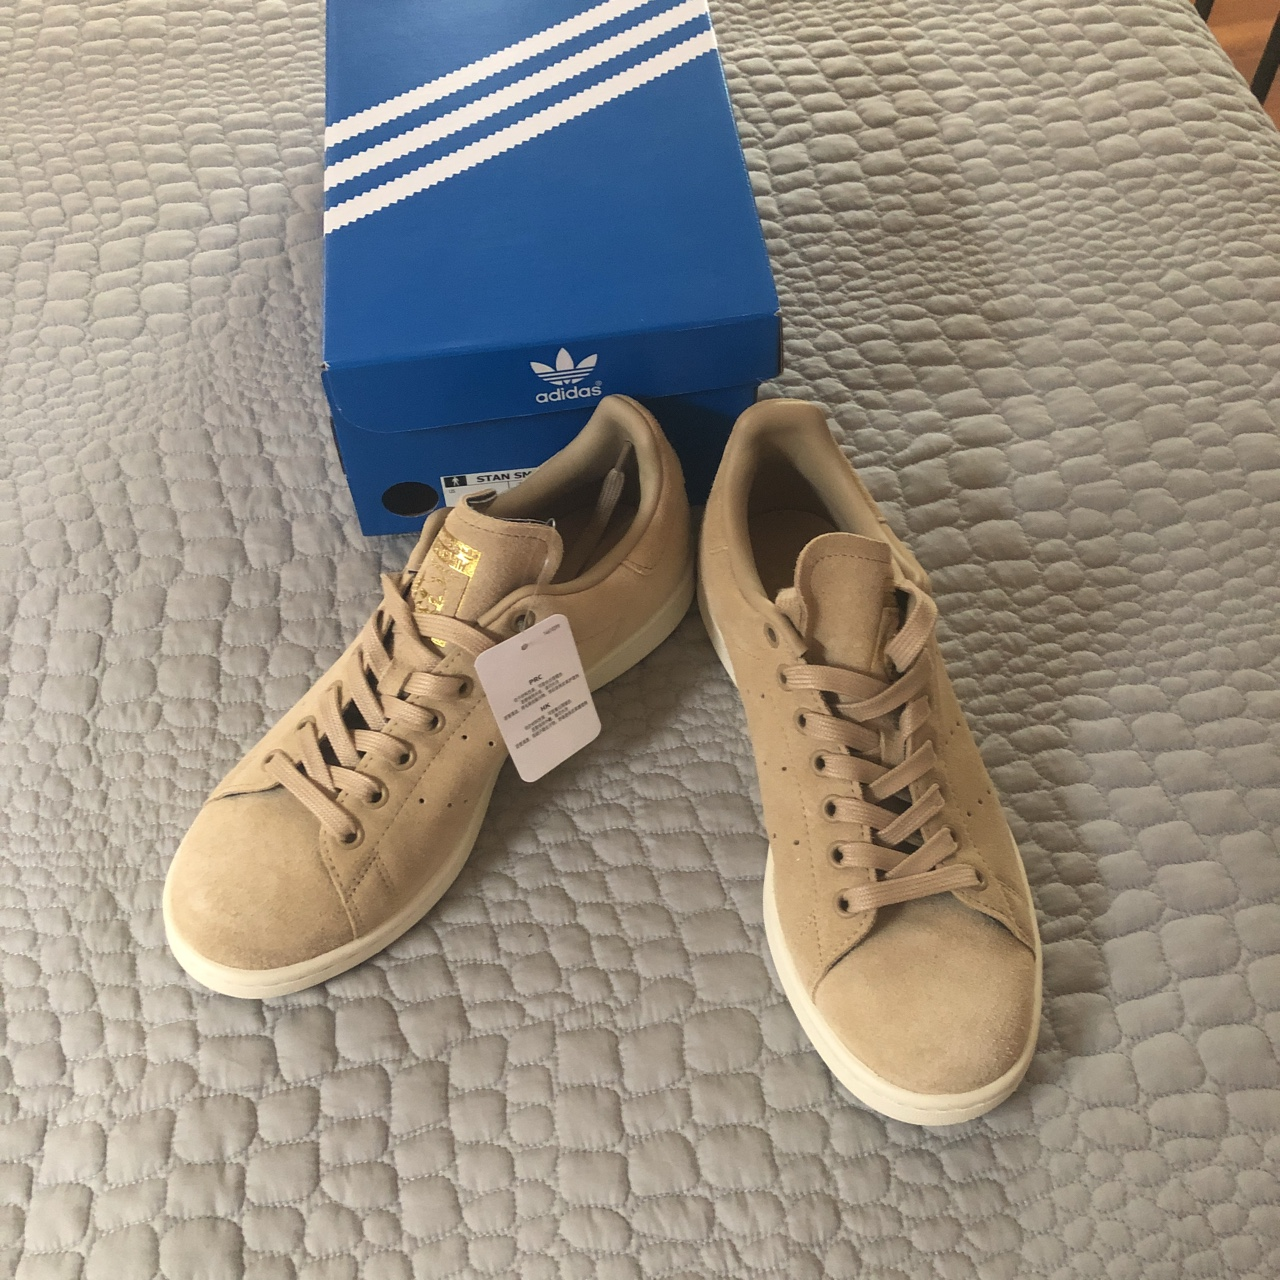 cheap for discount 0d233 f8691 Adidas Stan Smith suede shoes in linen khaki! - Depop